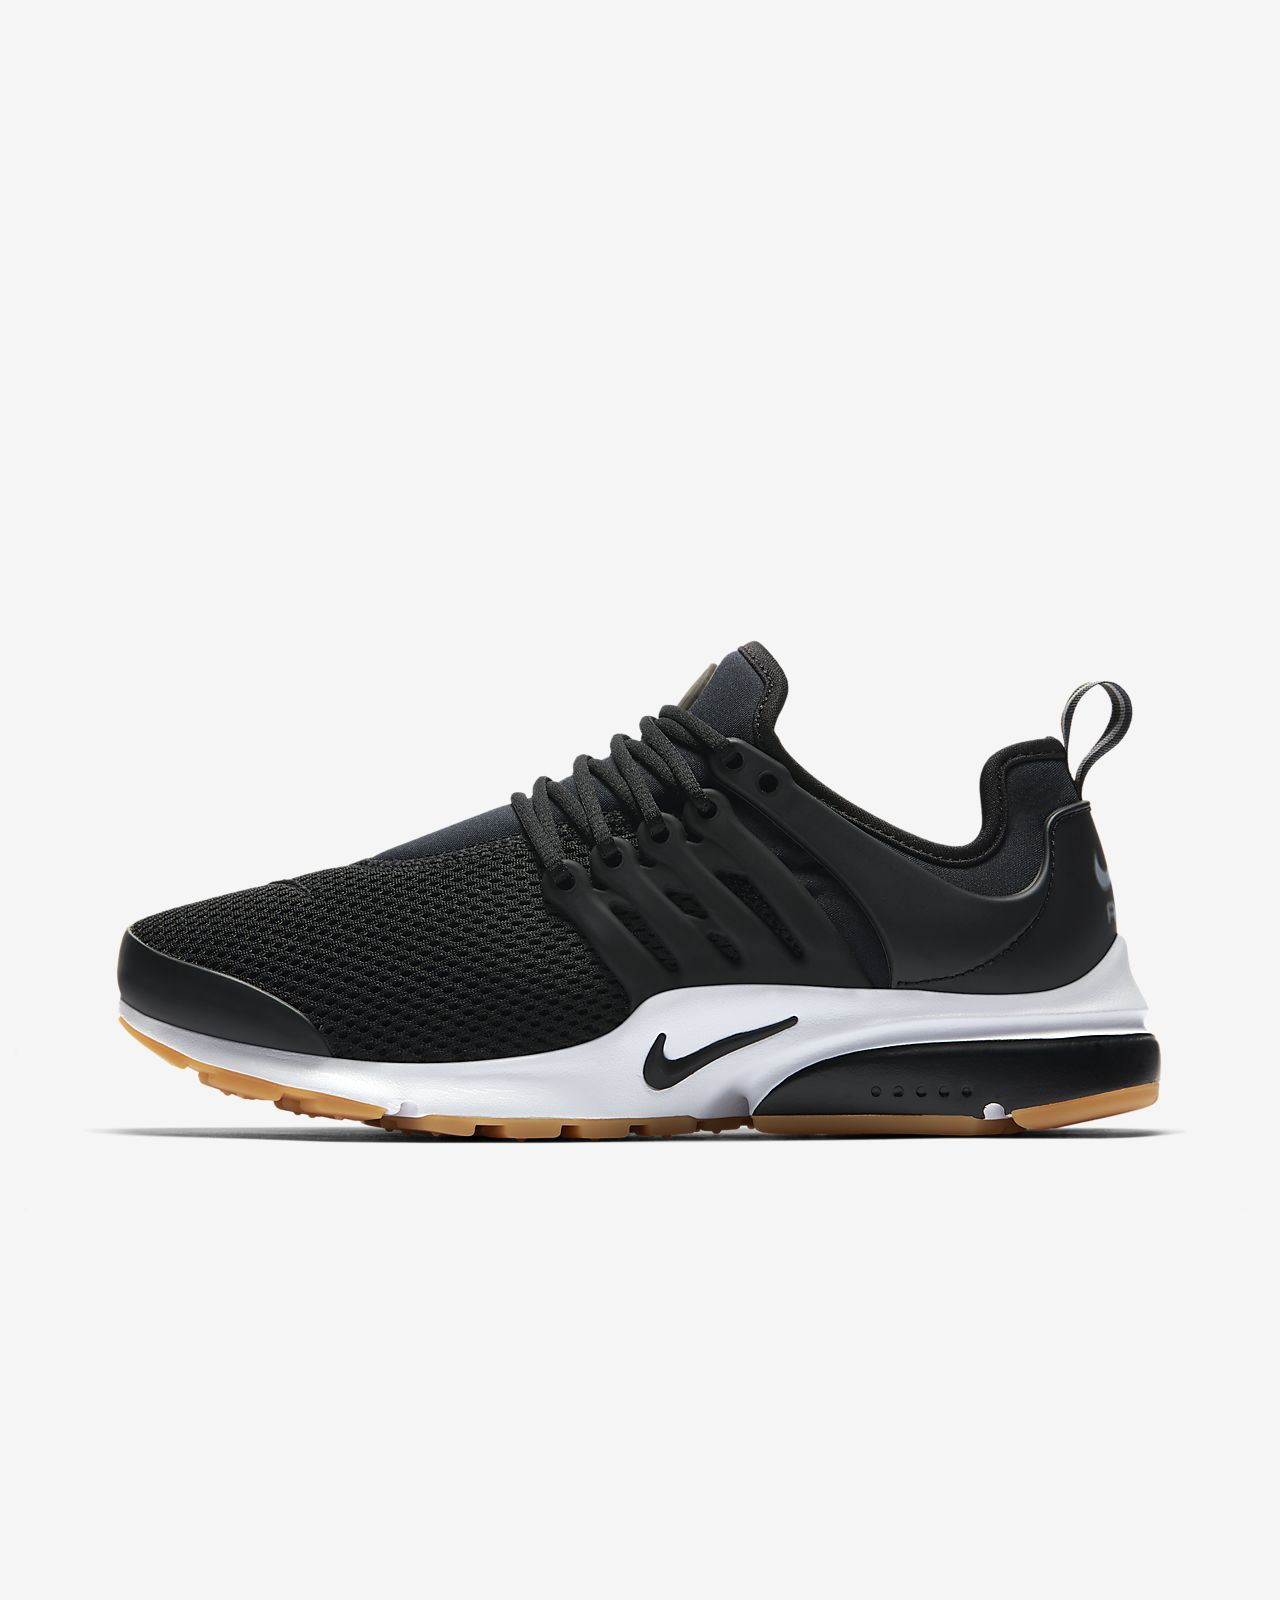 watch a81f0 6dda4 ... Nike Air Presto Women s Shoe